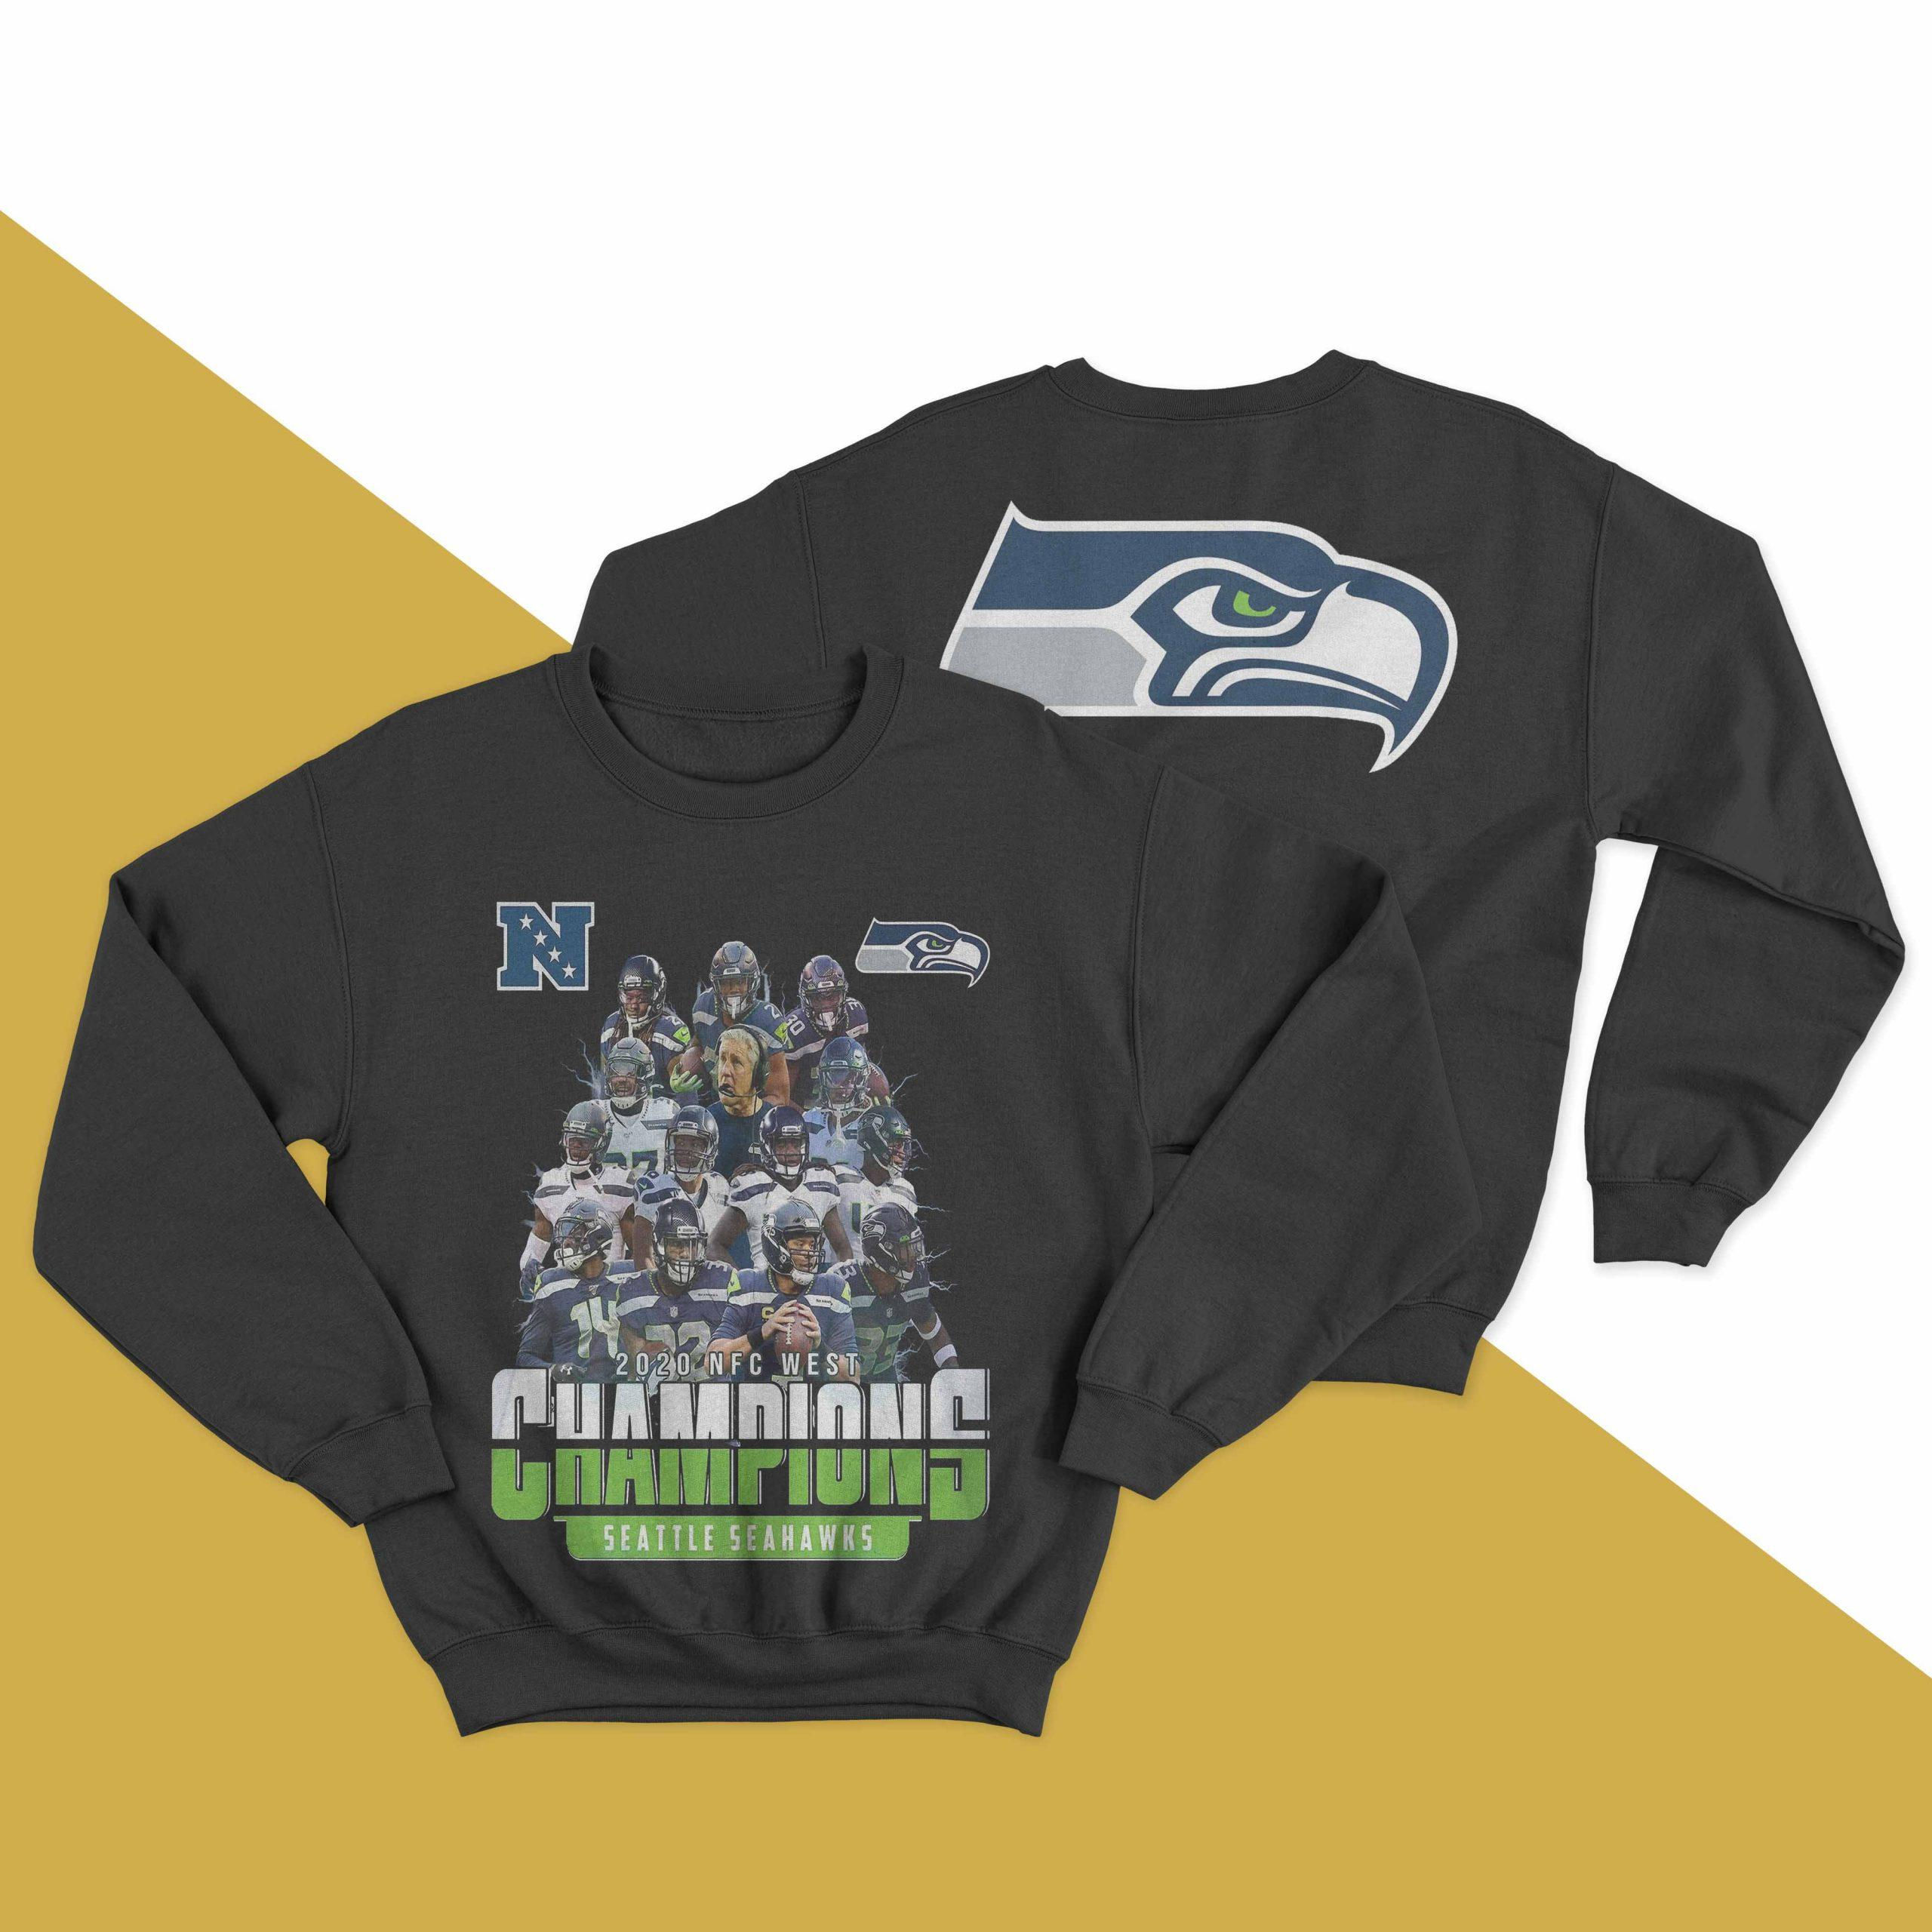 2020 Nfc West Champions Seattle Seahawks Sweater